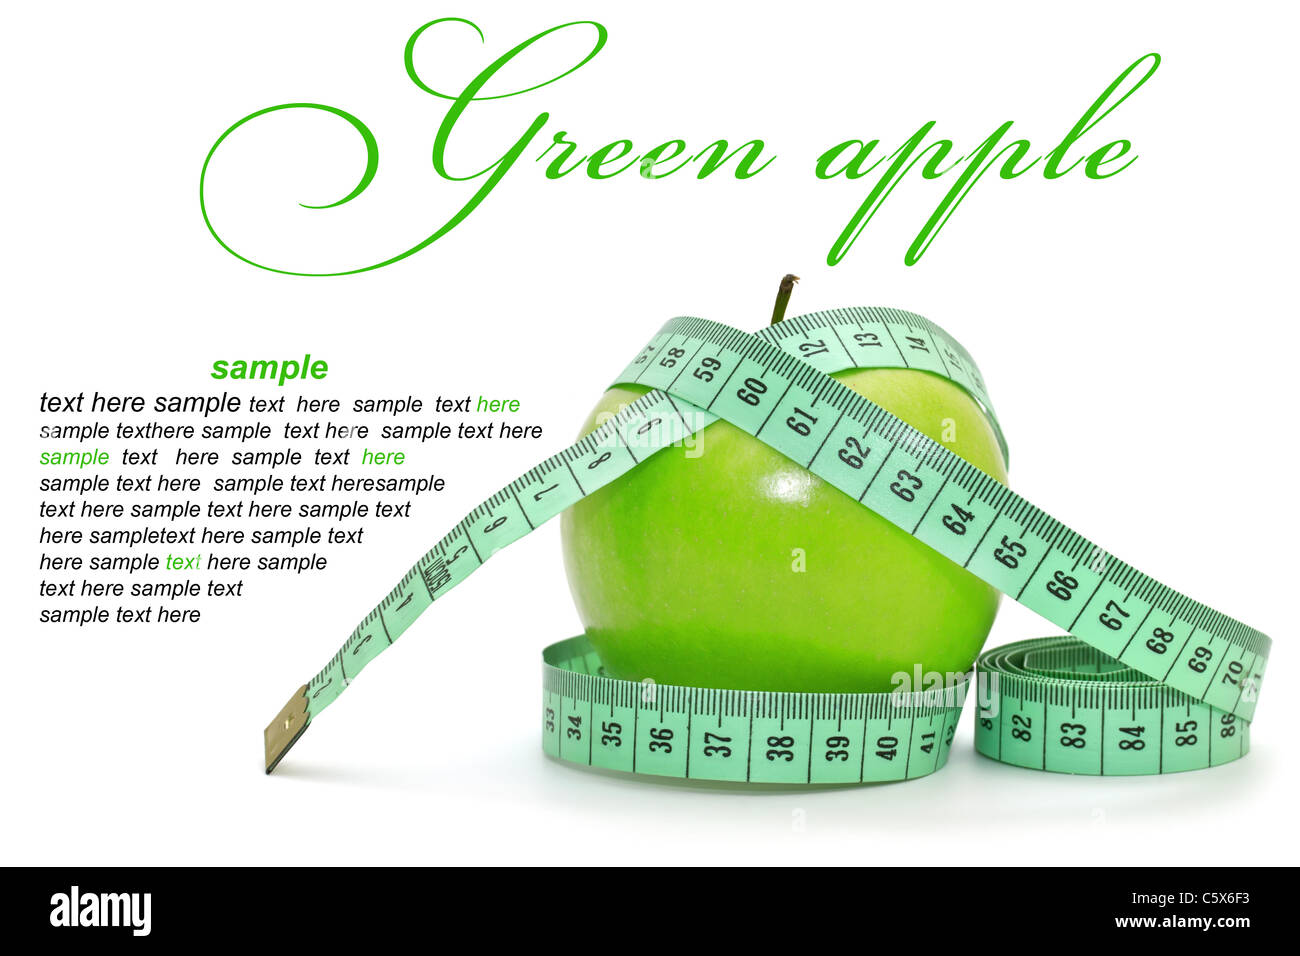 Green apple on white background - Stock Image